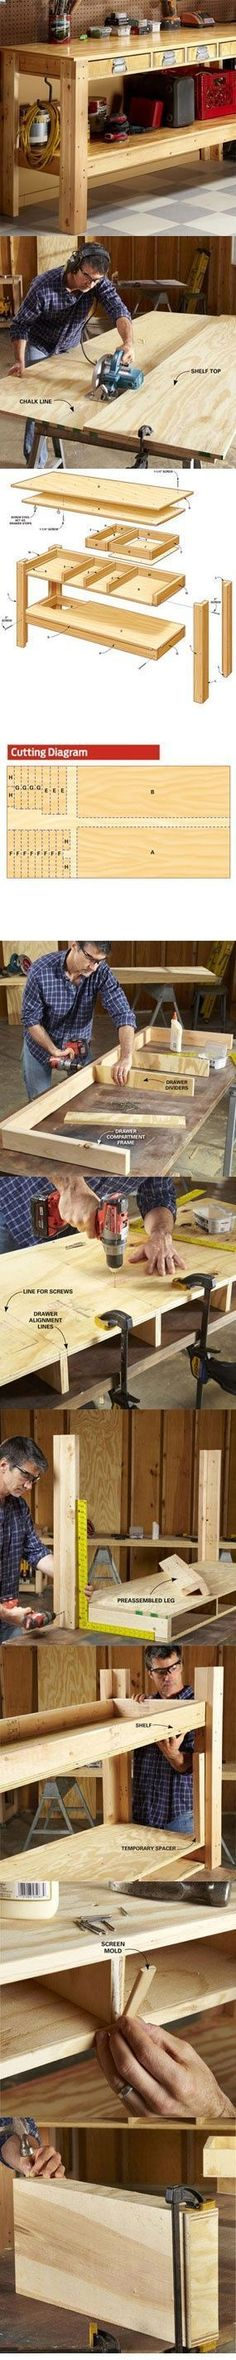 Use this simple workbench plan to build a sturdy, tough workbench that'll last for decades. #woodworkingbench